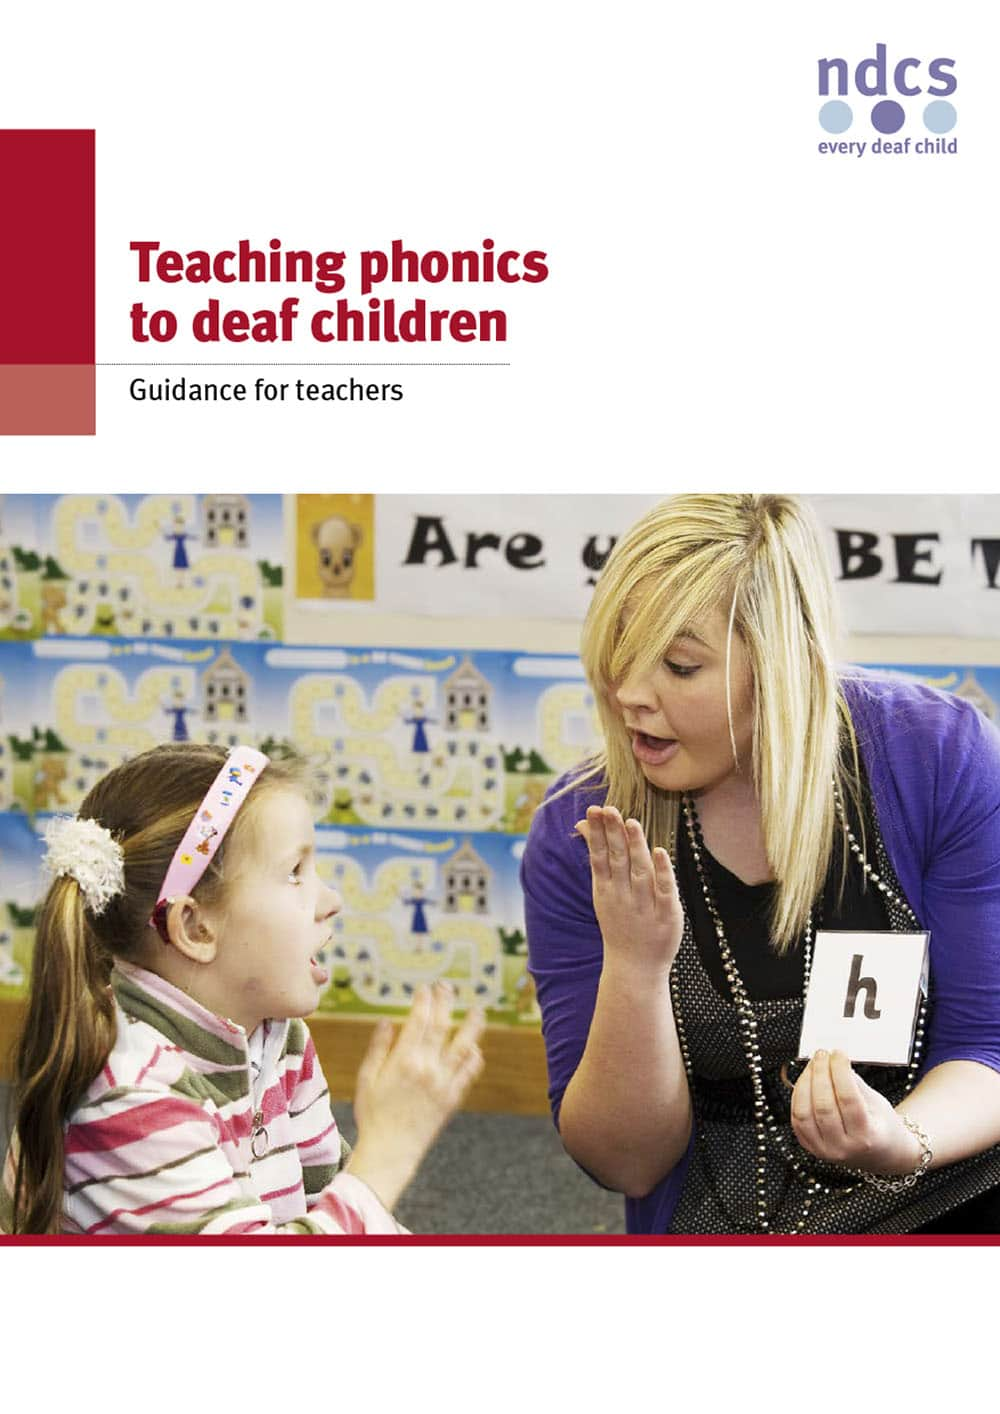 Teaching phonics to deaf children: Guidance for teachers